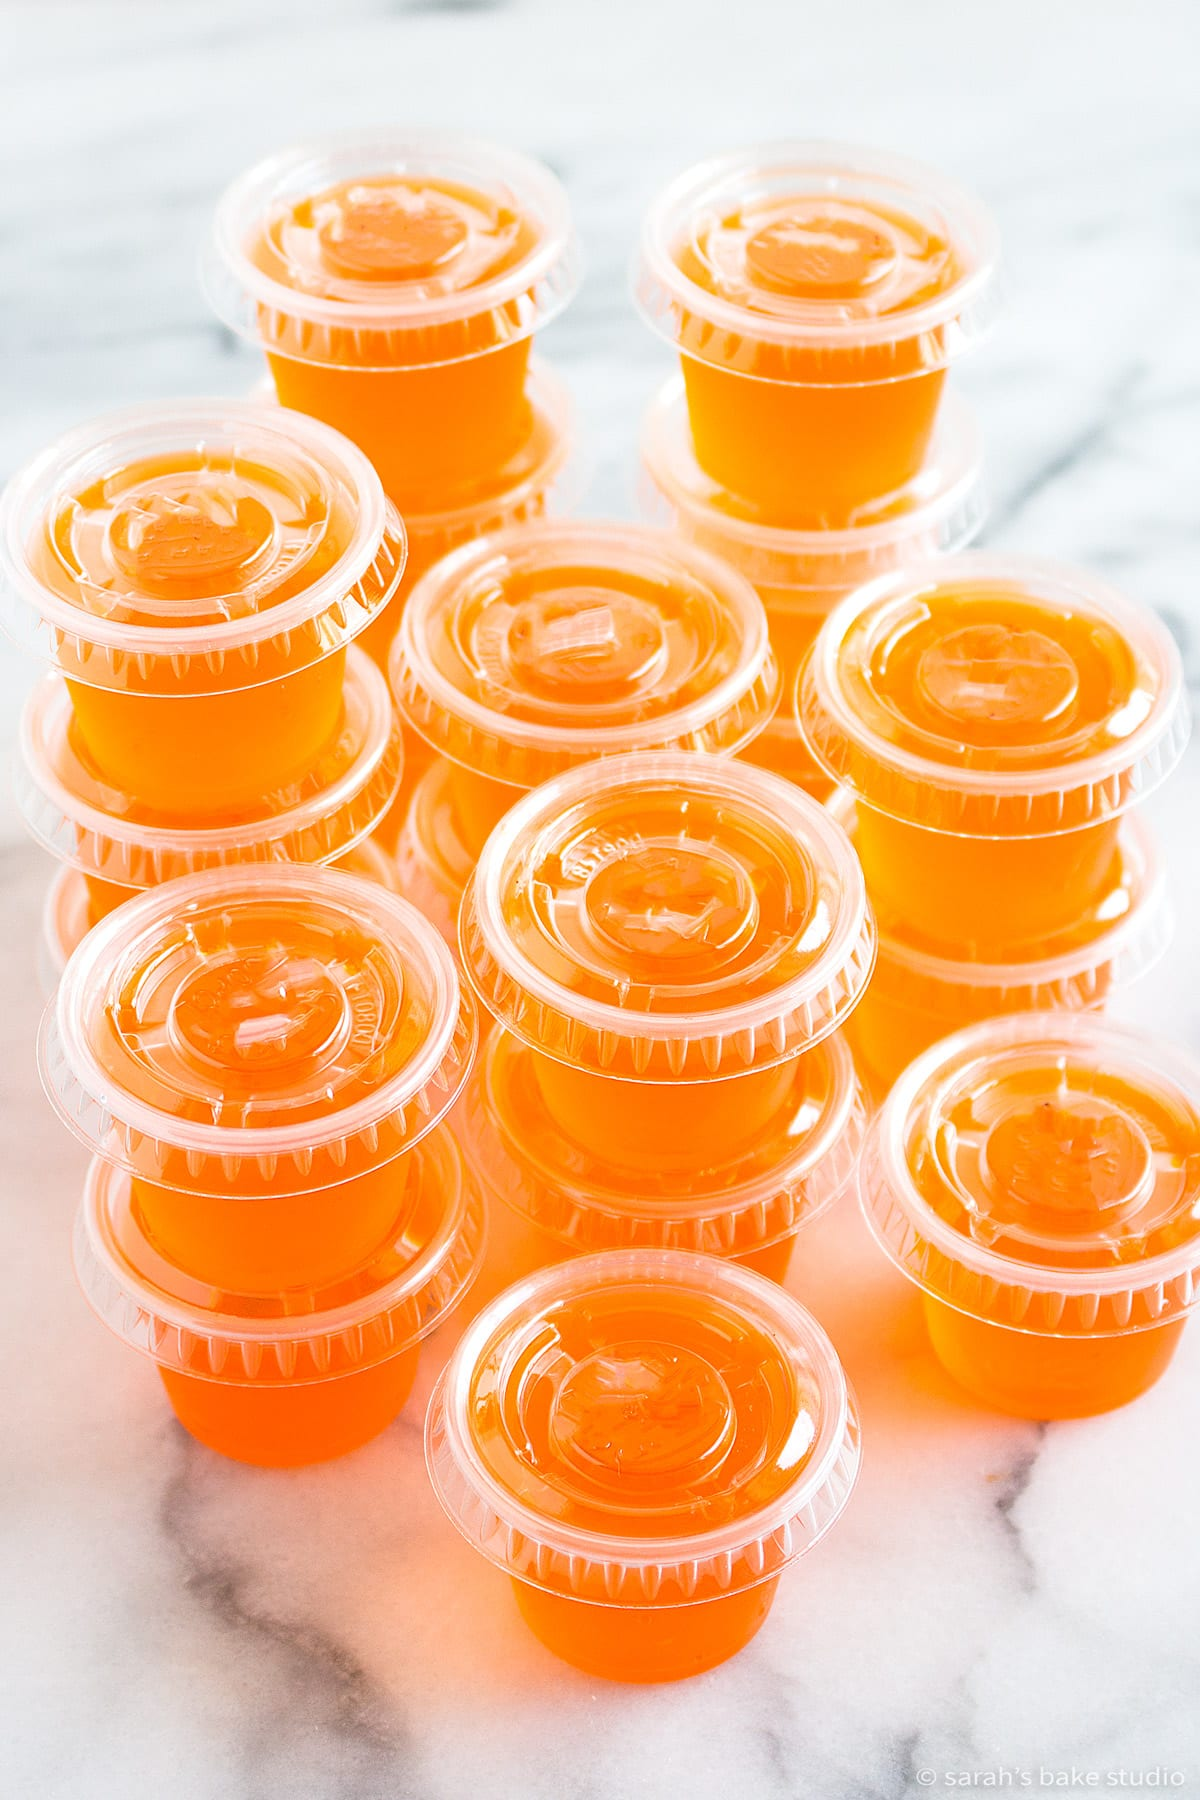 fuzzy navel jello shots in plastic one-ounce cups with lids